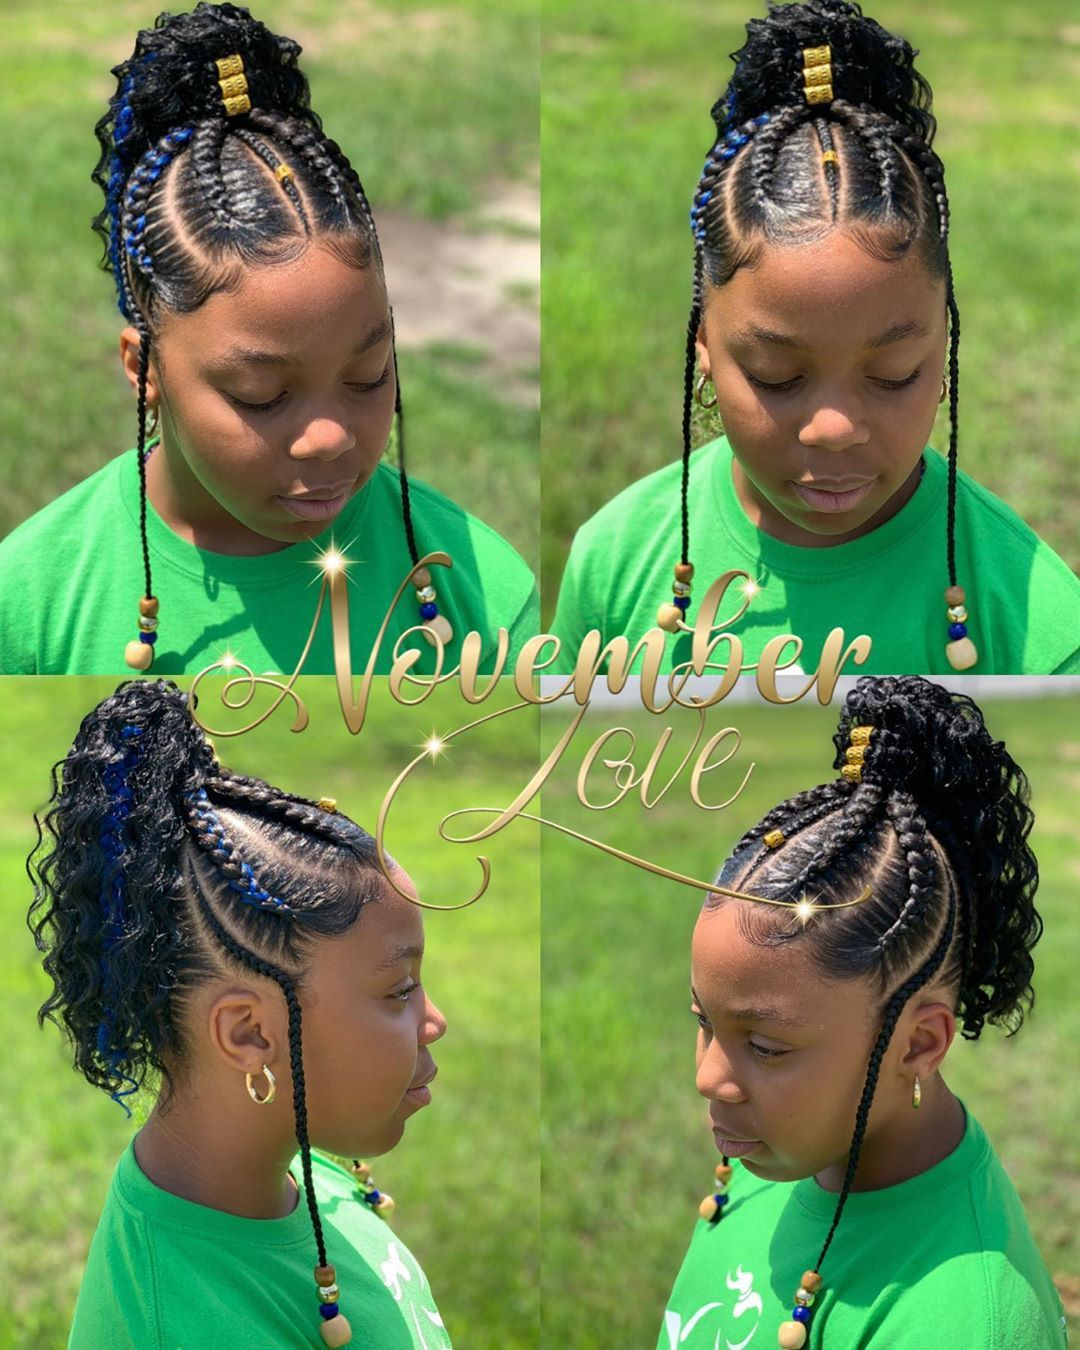 Image May Contain One Or More People And Text Braided Hairstyles Kids Braided Hairstyles Braids For Black Hair